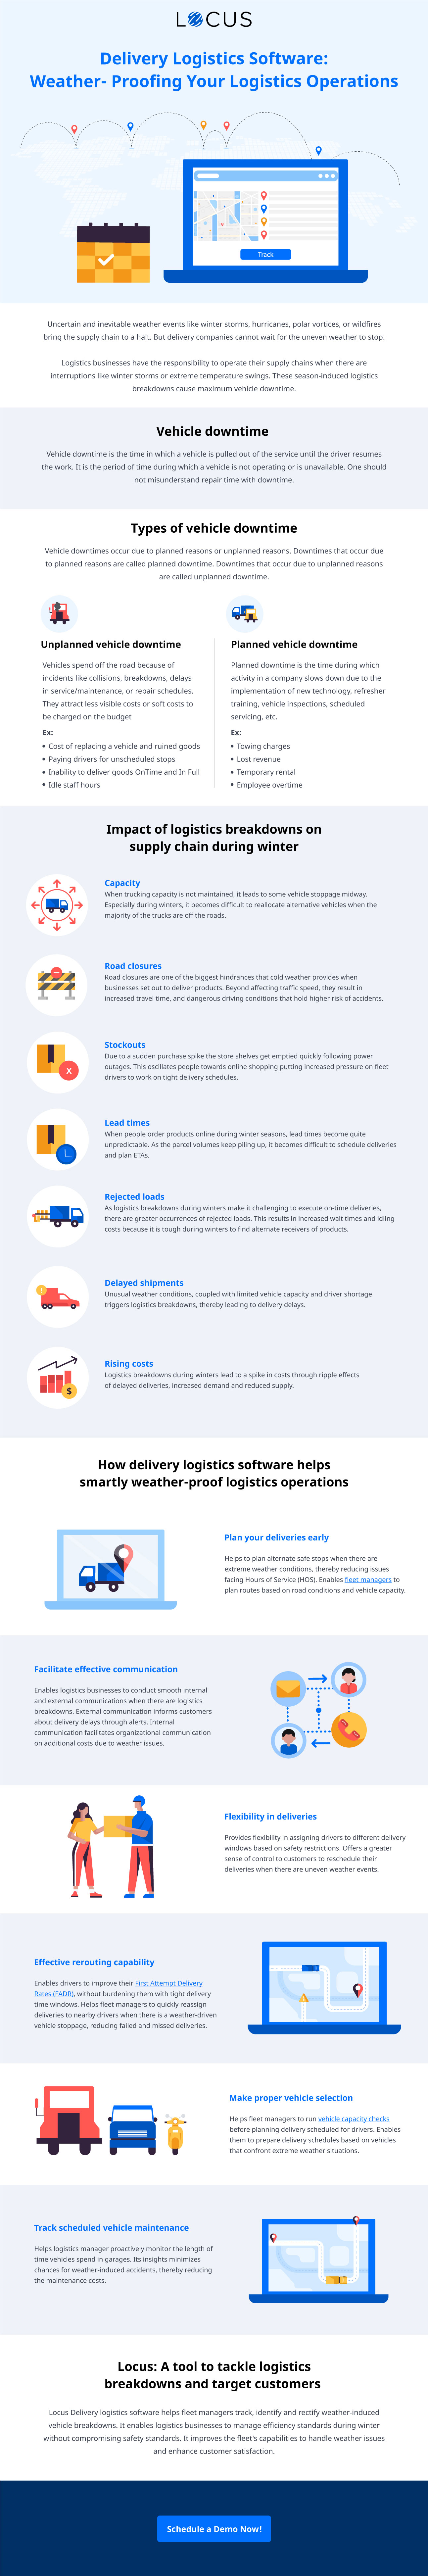 [Infographics] Weather-Proofing Your Delivery Logistics Operations